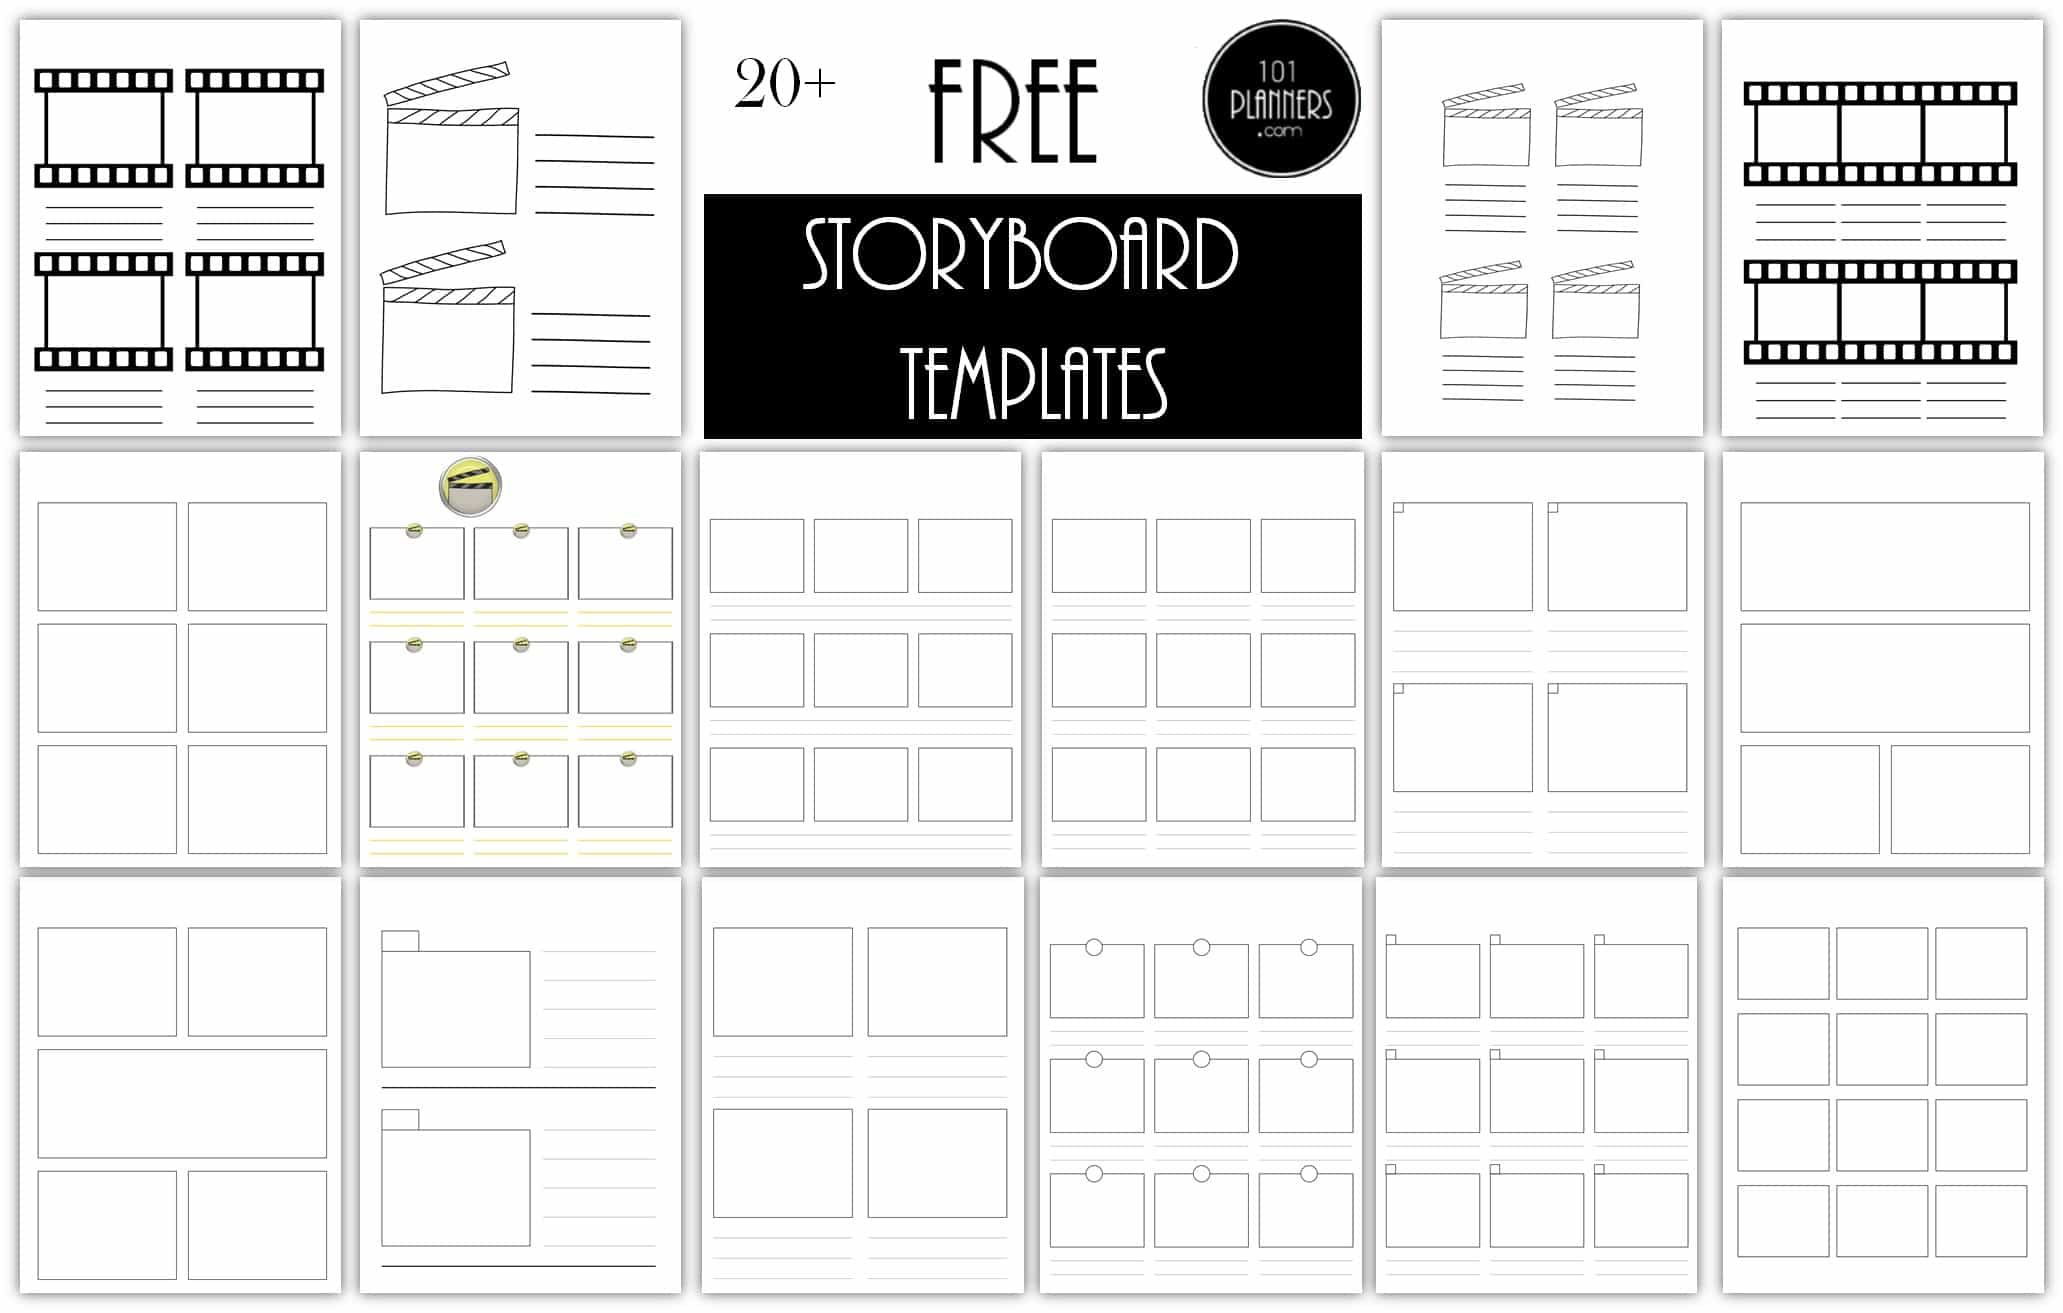 Free storyboard template maker storyboard templates saigontimesfo